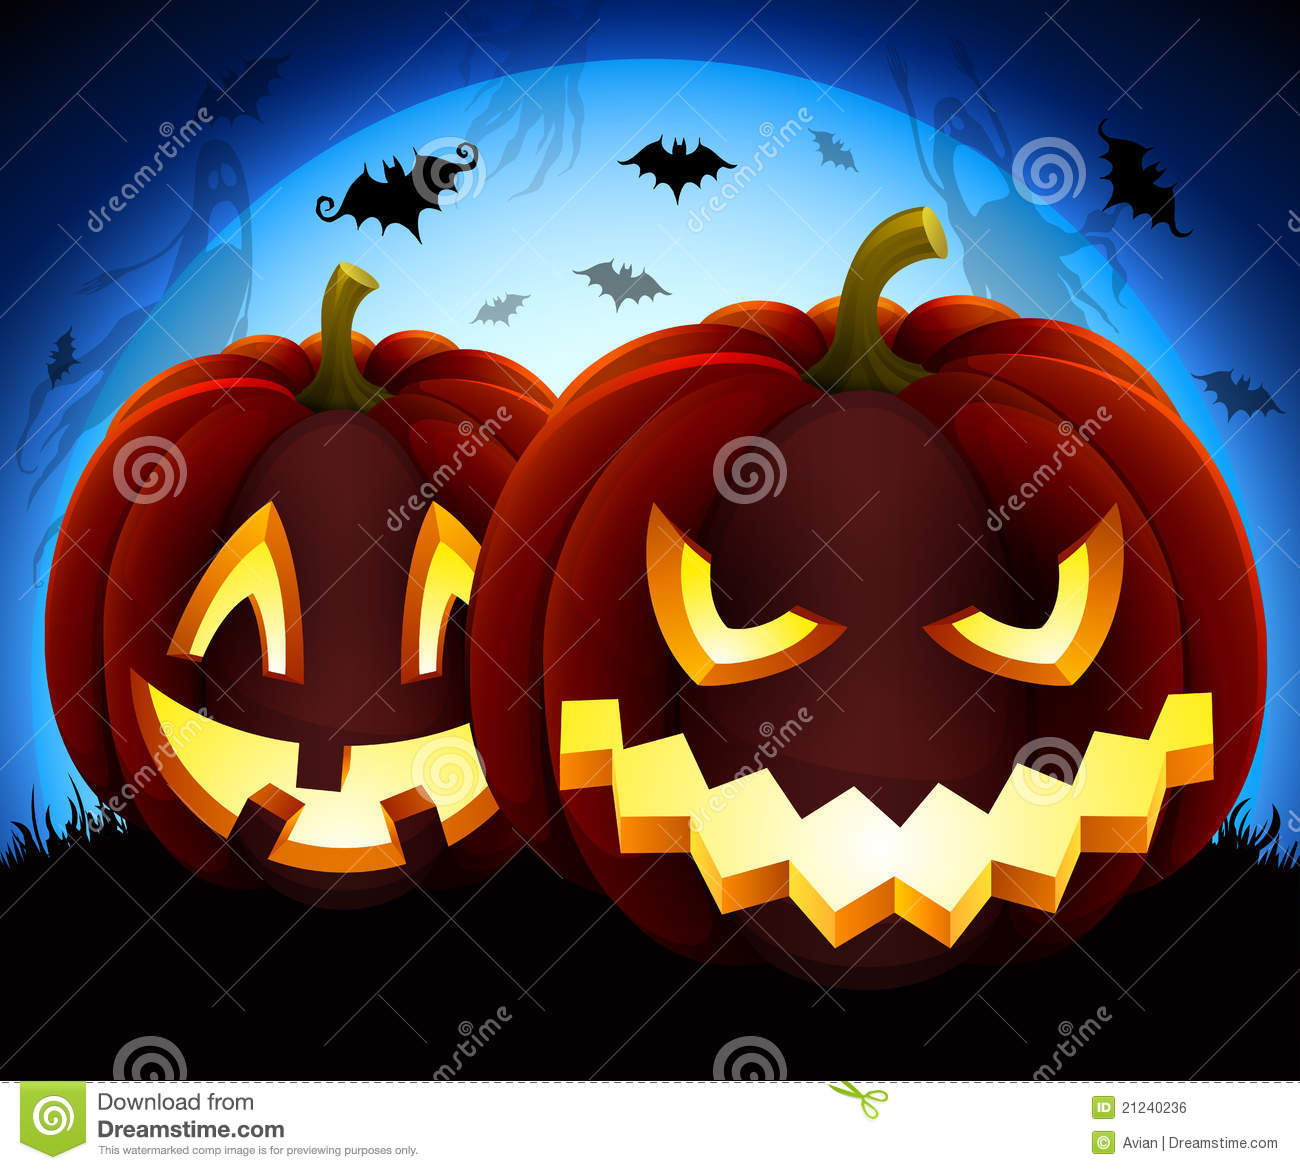 halloween illustration royalty free stock image image halloween jack o lantern clipart halloween jack o lantern clipart